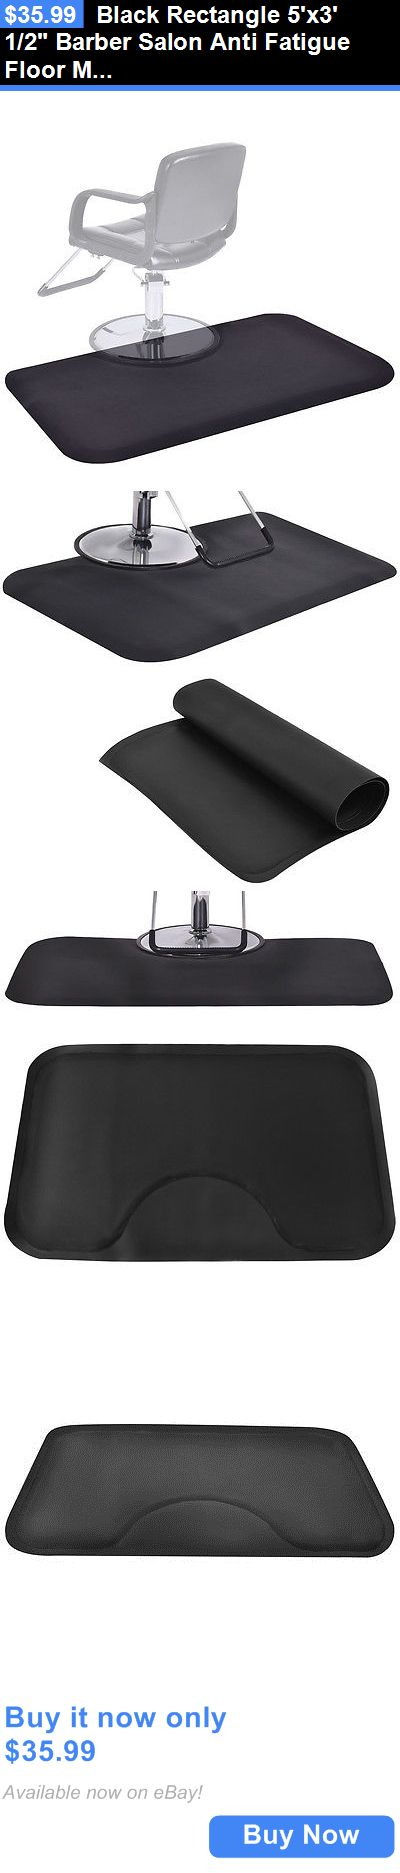 Other Salon and Spa Equipment: Black Rectangle 5X3 1/2 Barber Salon Anti Fatigue Floor Mat Beauty Supplier BUY IT NOW ONLY: $35.99